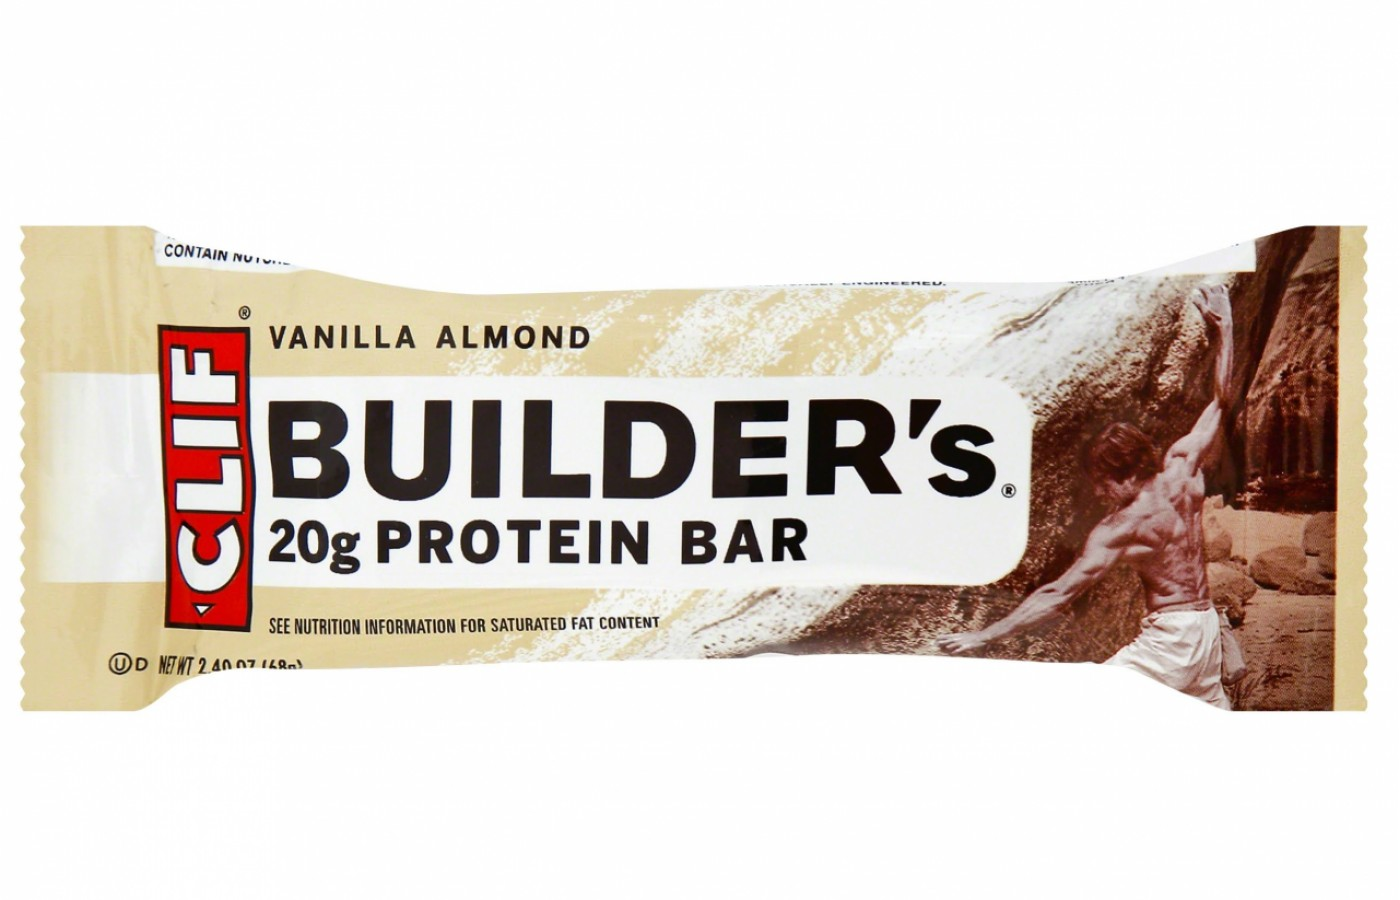 Clif Builder's Vanilla Almond for those who don't like chocolate.